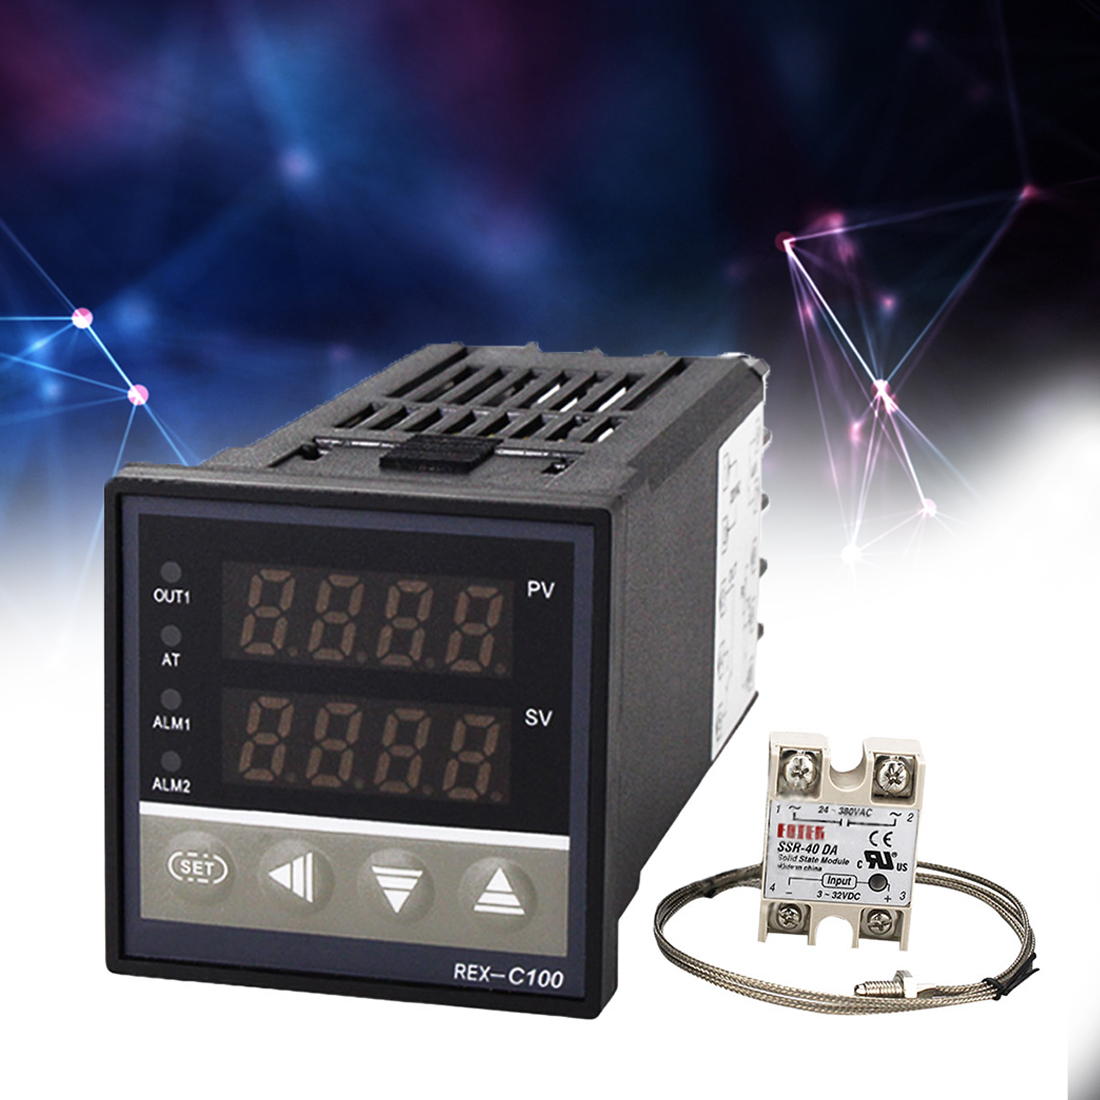 SSR-40 Relay V * AN REX-C100 PID Temperature Controller Switch Thermostat